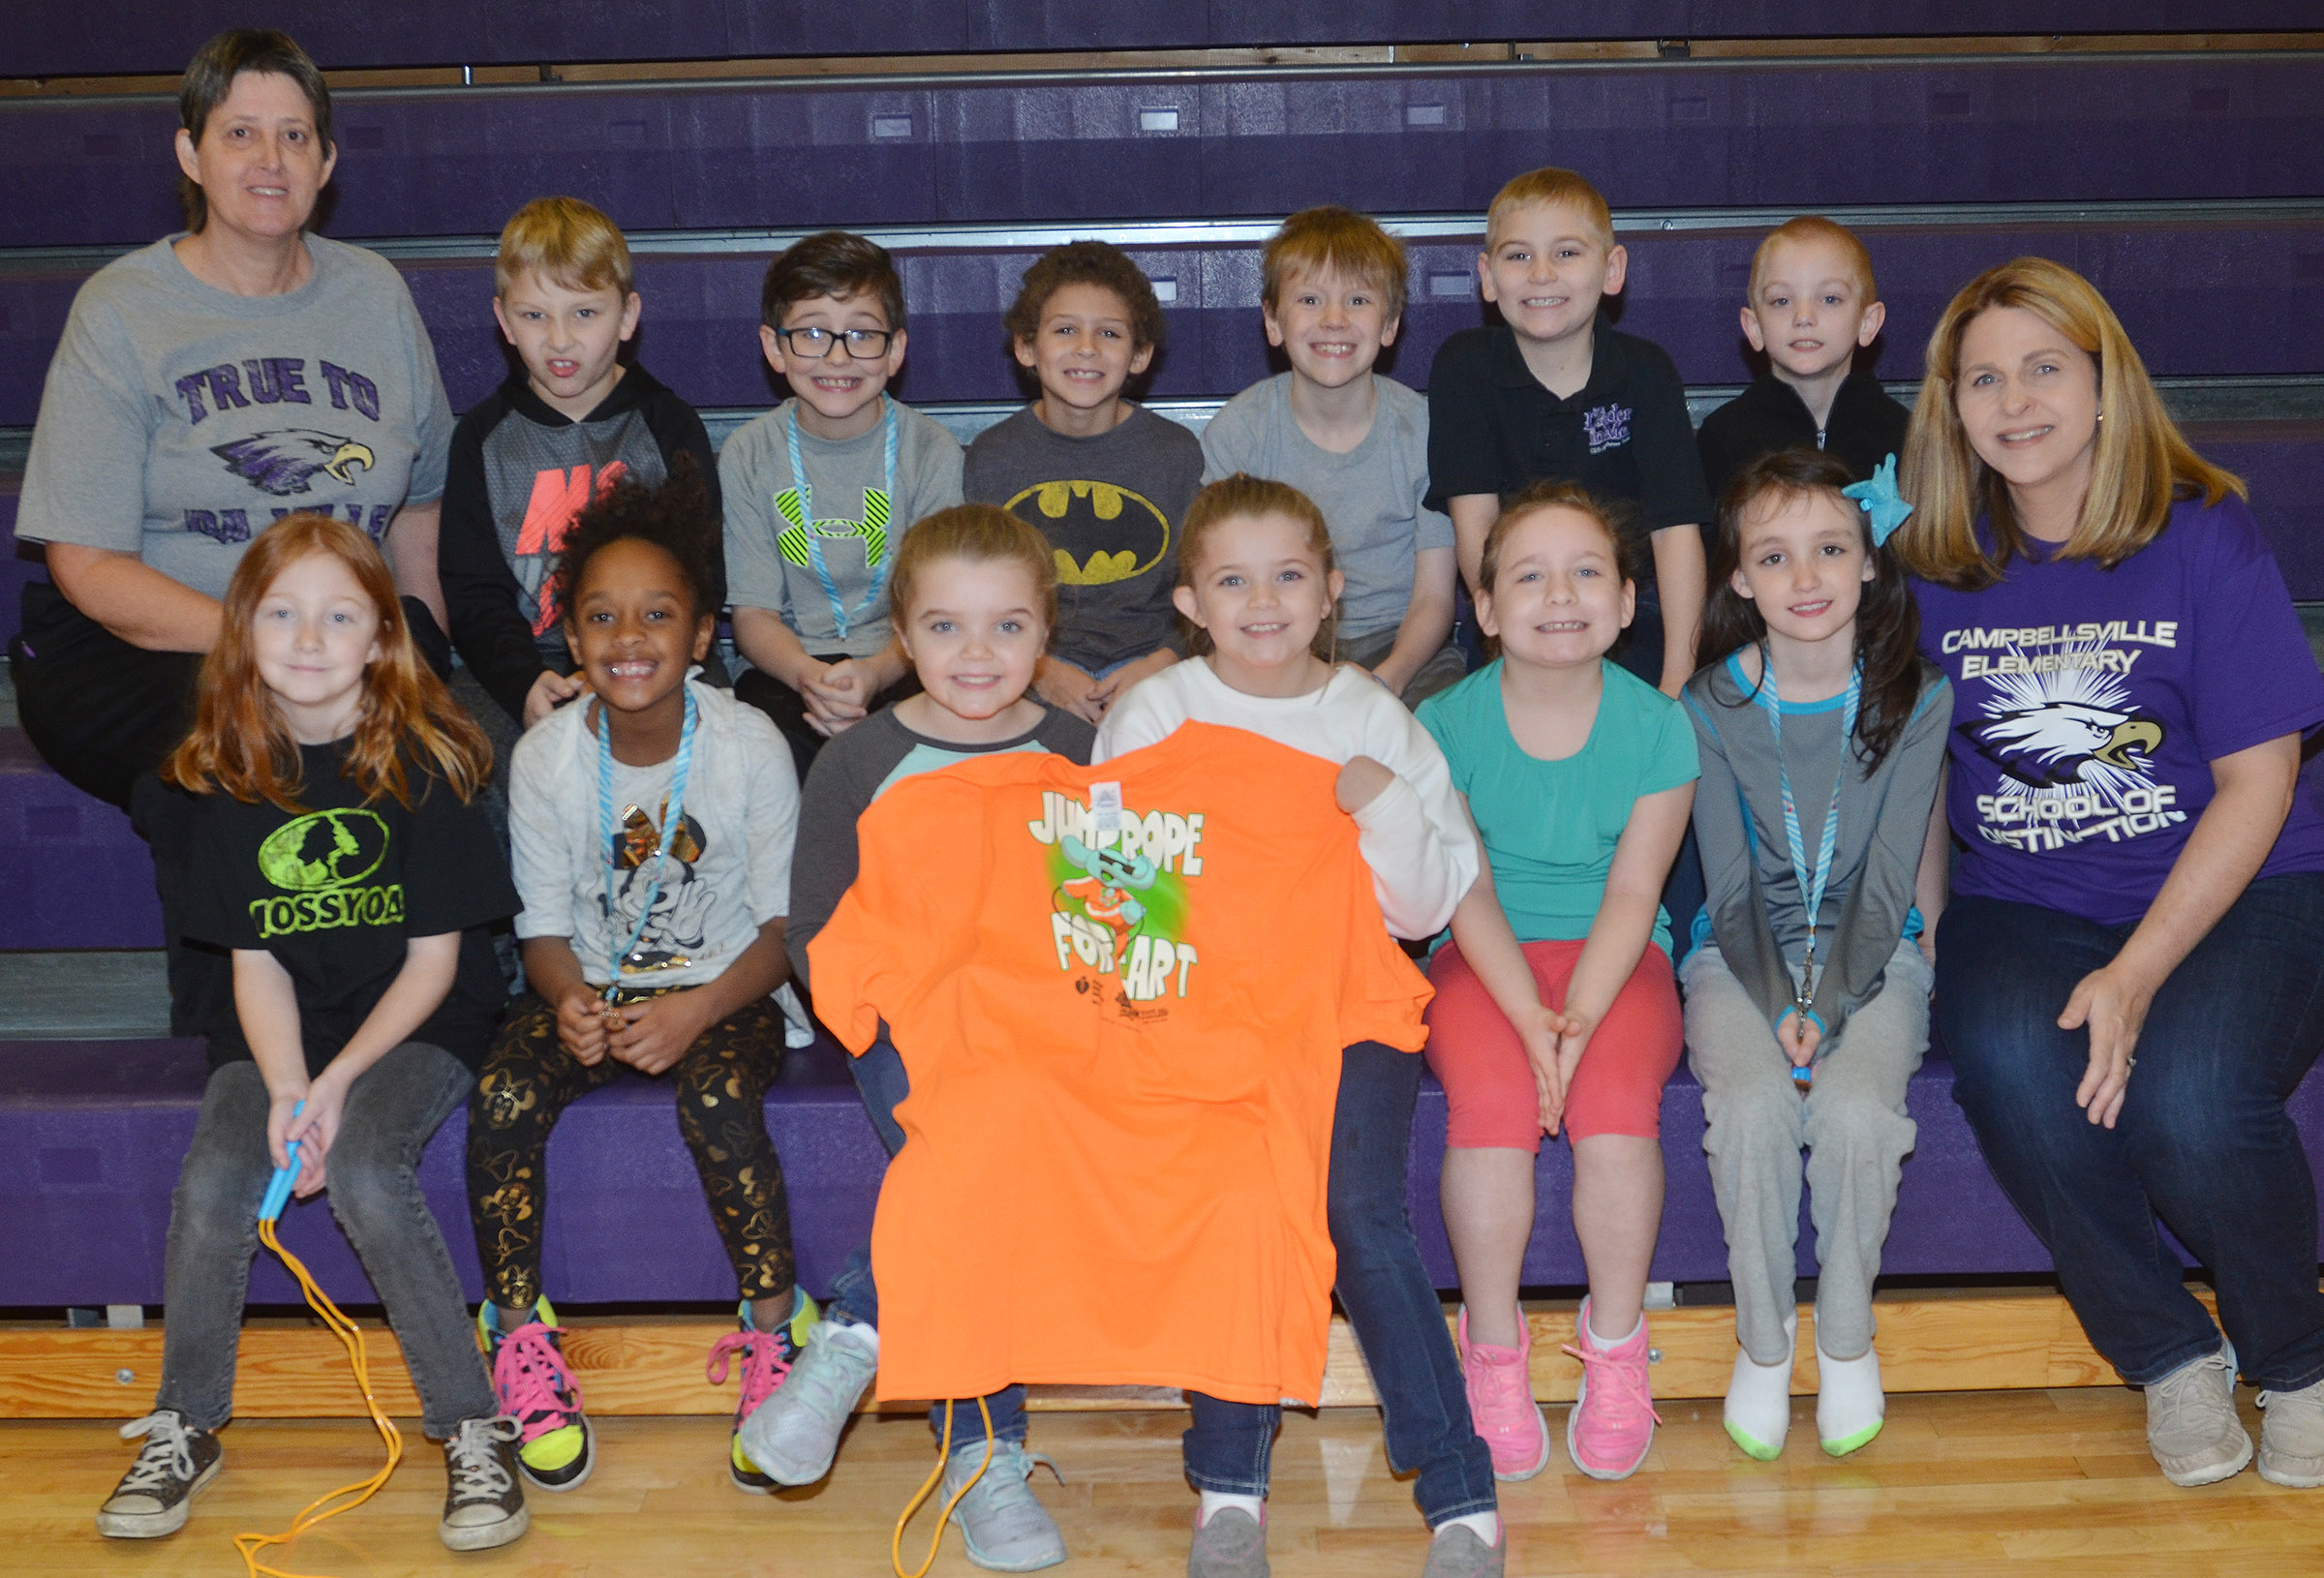 This year's CES Jump Rope for Heart participants are, front, from left, third-grader Savannah Wethington, second-graders Lashonda Wilkinson and Jaylin Christie, third-graders Chyanne Christie, Aliyah Burton and Paige Ritchie and CES guidance counselor Sonya Orberson. Back, Campbellsville Middle School special education teacher Katie Wilkerson, second-graders Mason Davis, Tye Rhodes and Trever Lasley, third-grader Connor Coots and second-graders Joseph Greer and Evan Cundiff. Absent from the photo is third-grade participant Nora Harris.